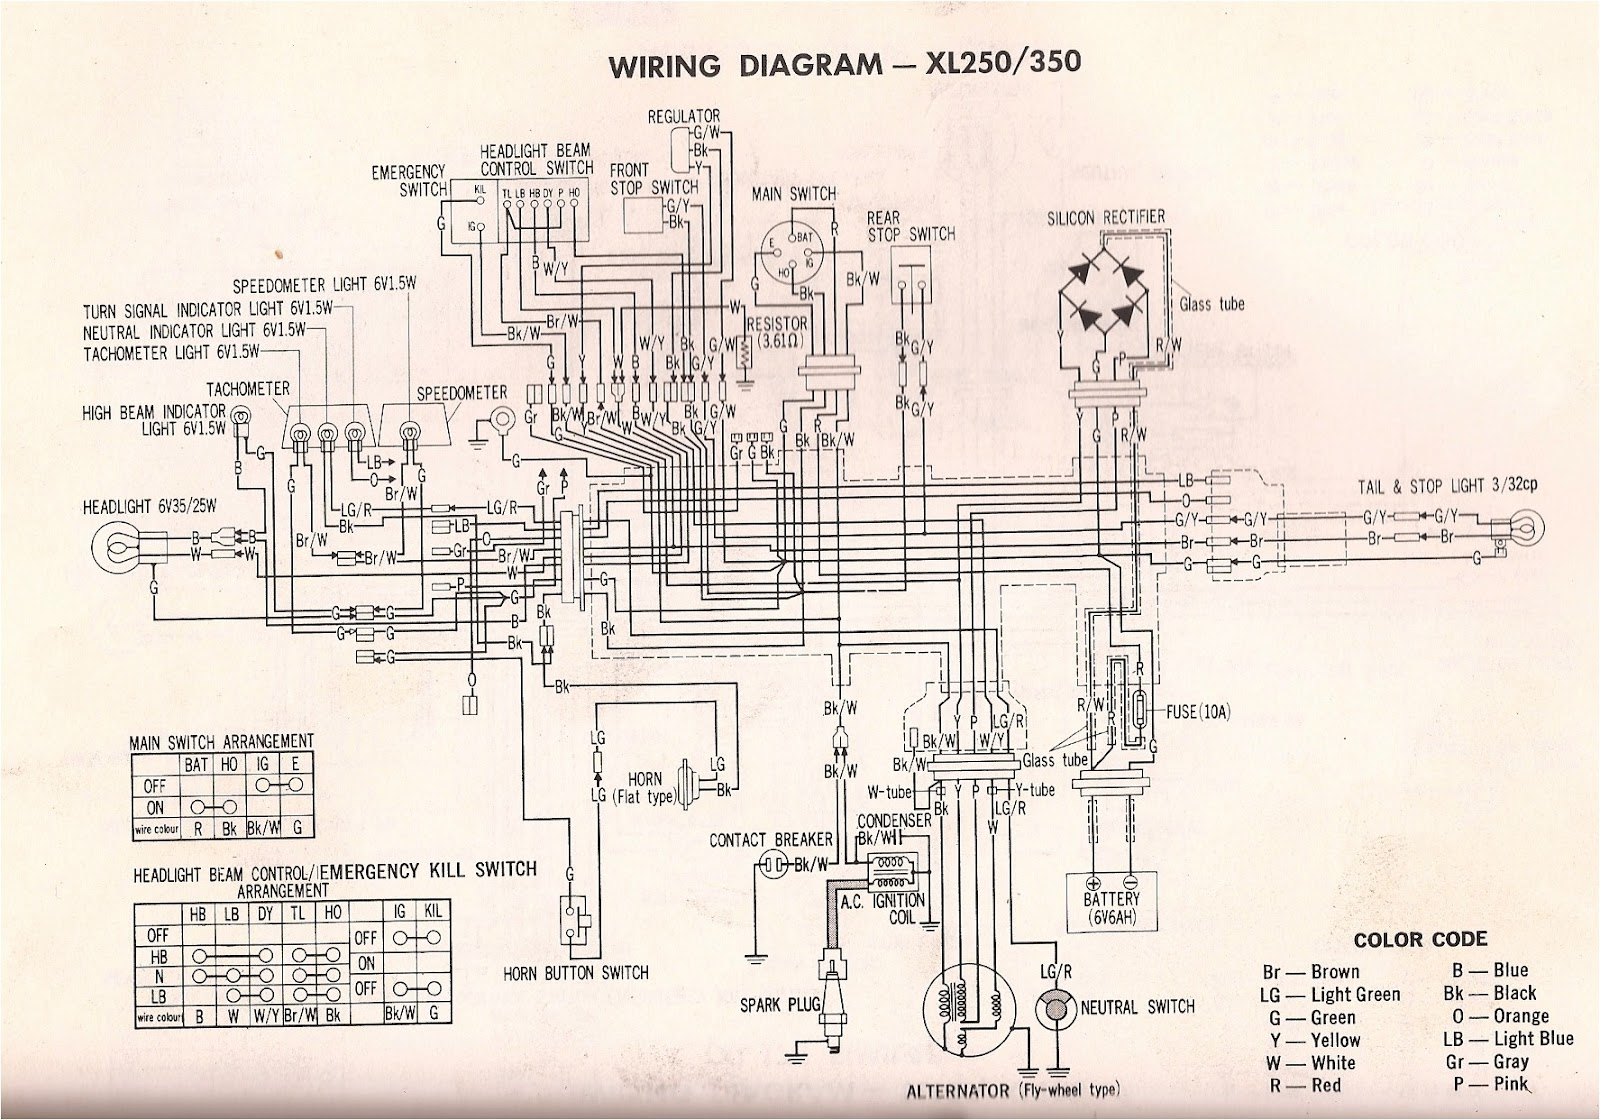 XL350+Wiring+diagram+S r4l xl350 wiring diagram (and xl250) 1974 Rupp Snowmobile at bayanpartner.co